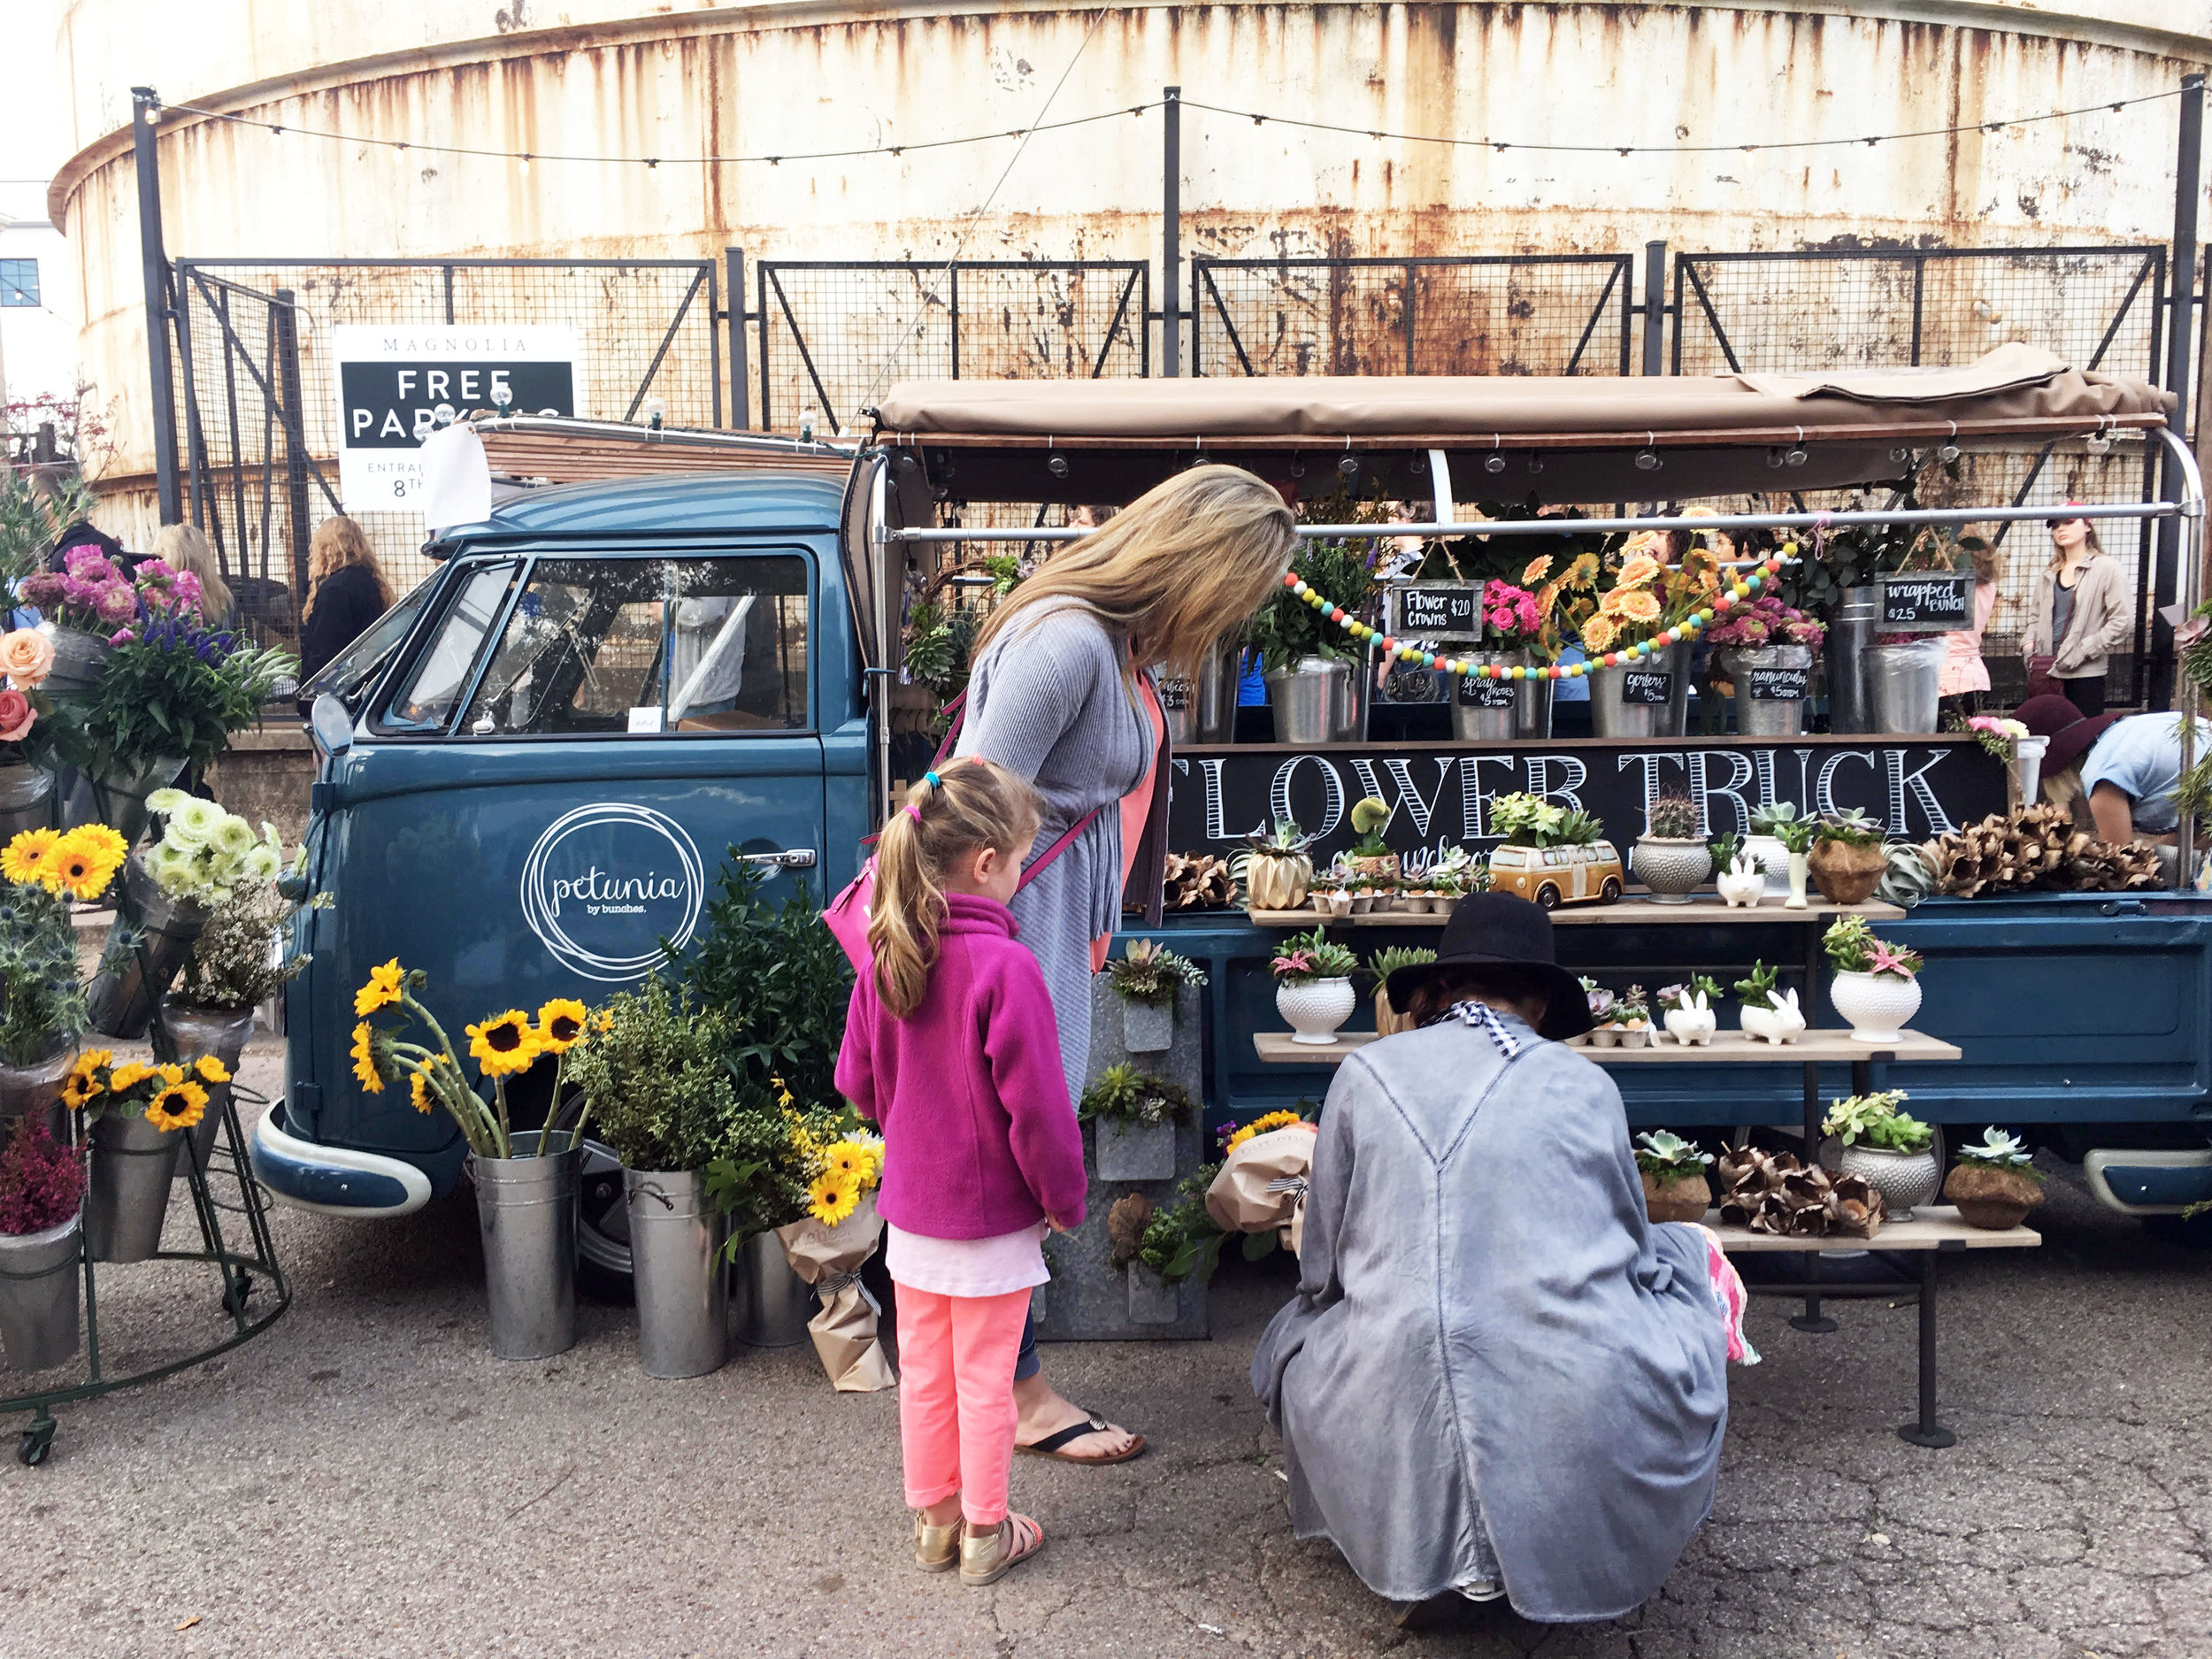 The Petunia flower truck by Bunches was a stunning breath of fresh air.